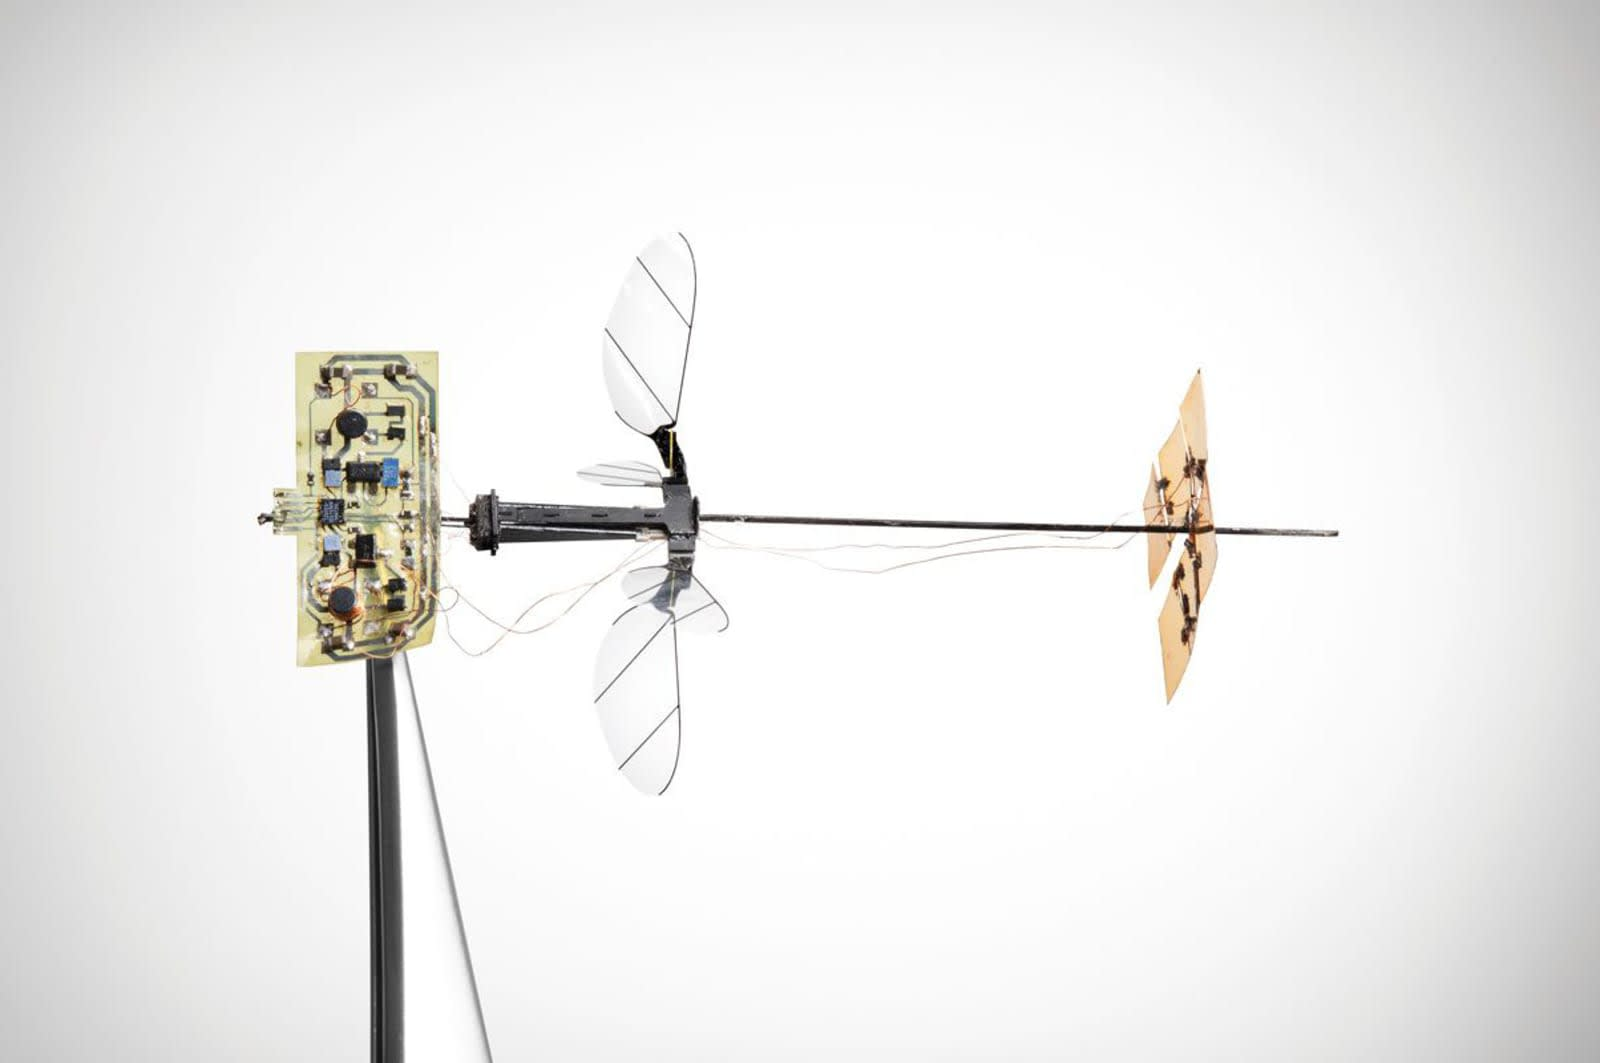 Harvard's RoboBee X-Wing can fly under its own power